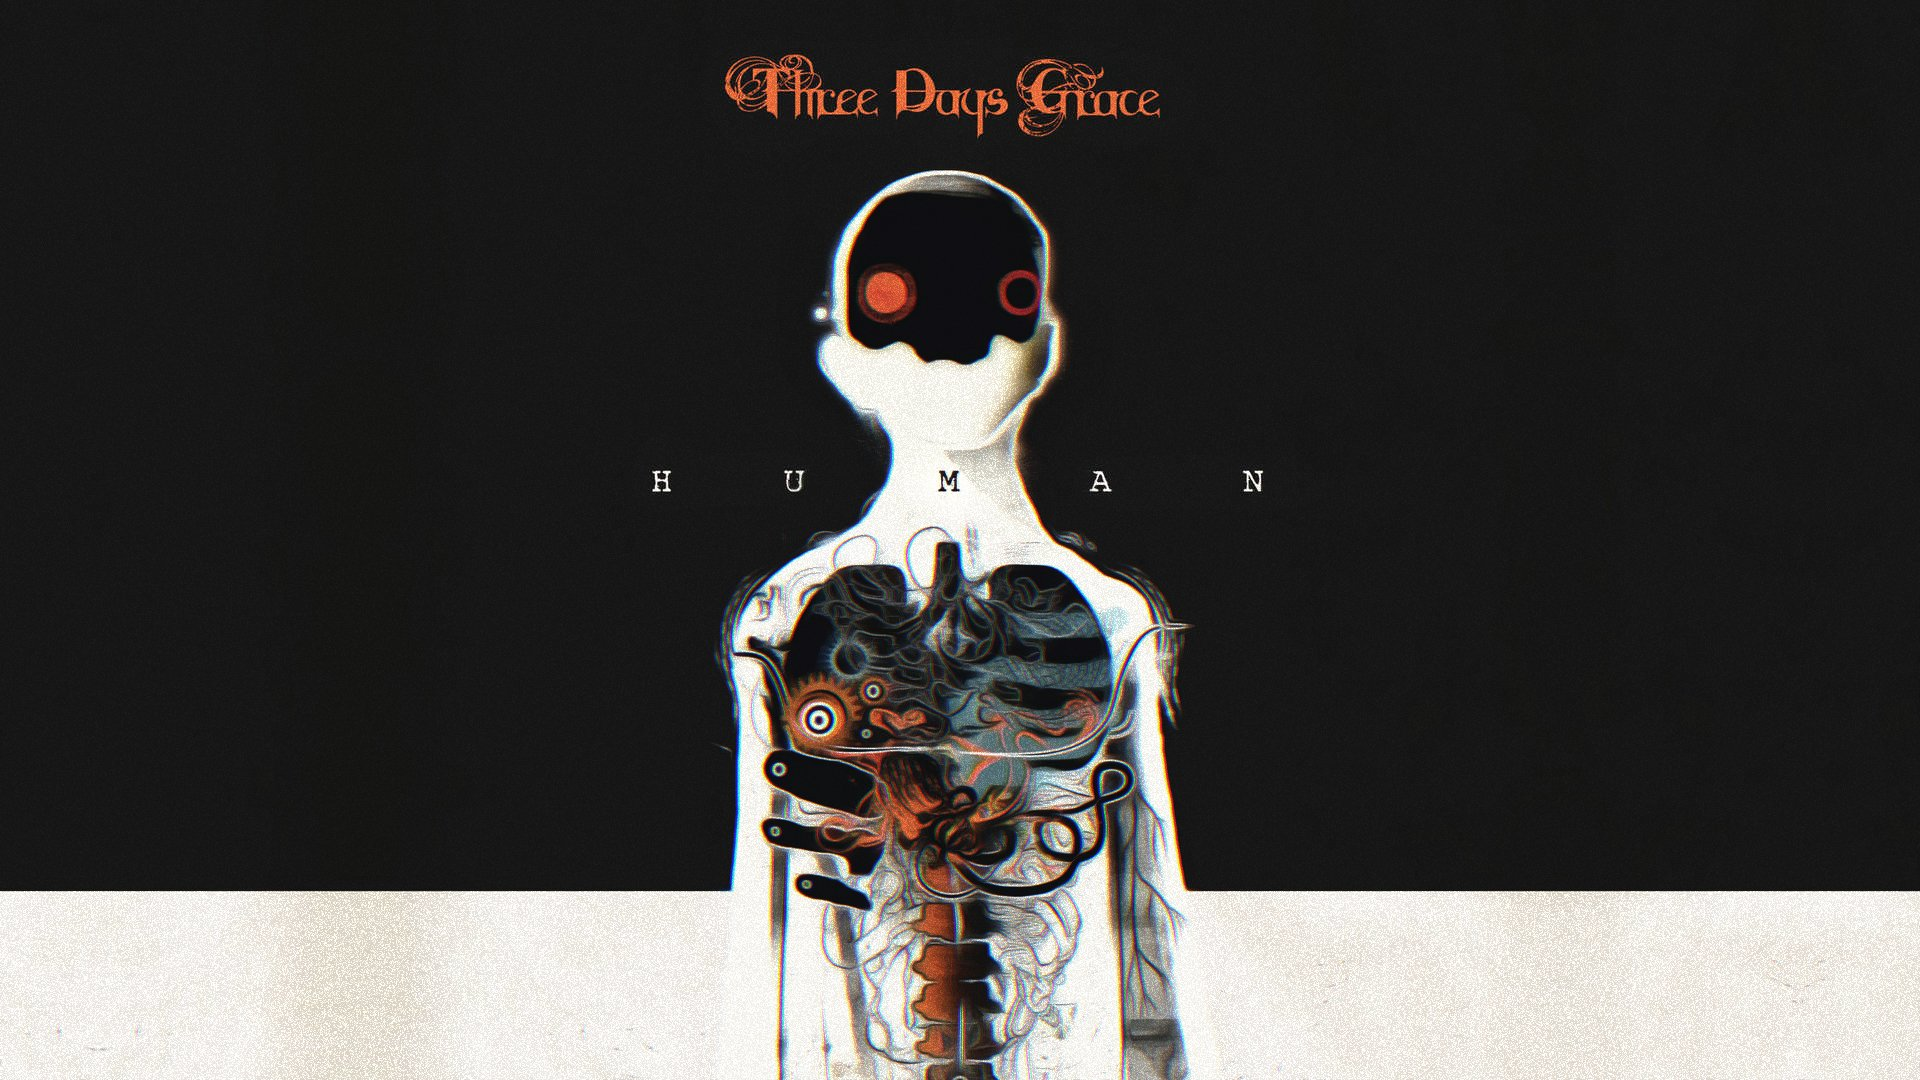 Three Days Grace Human Wallpaper - WallpaperSafari